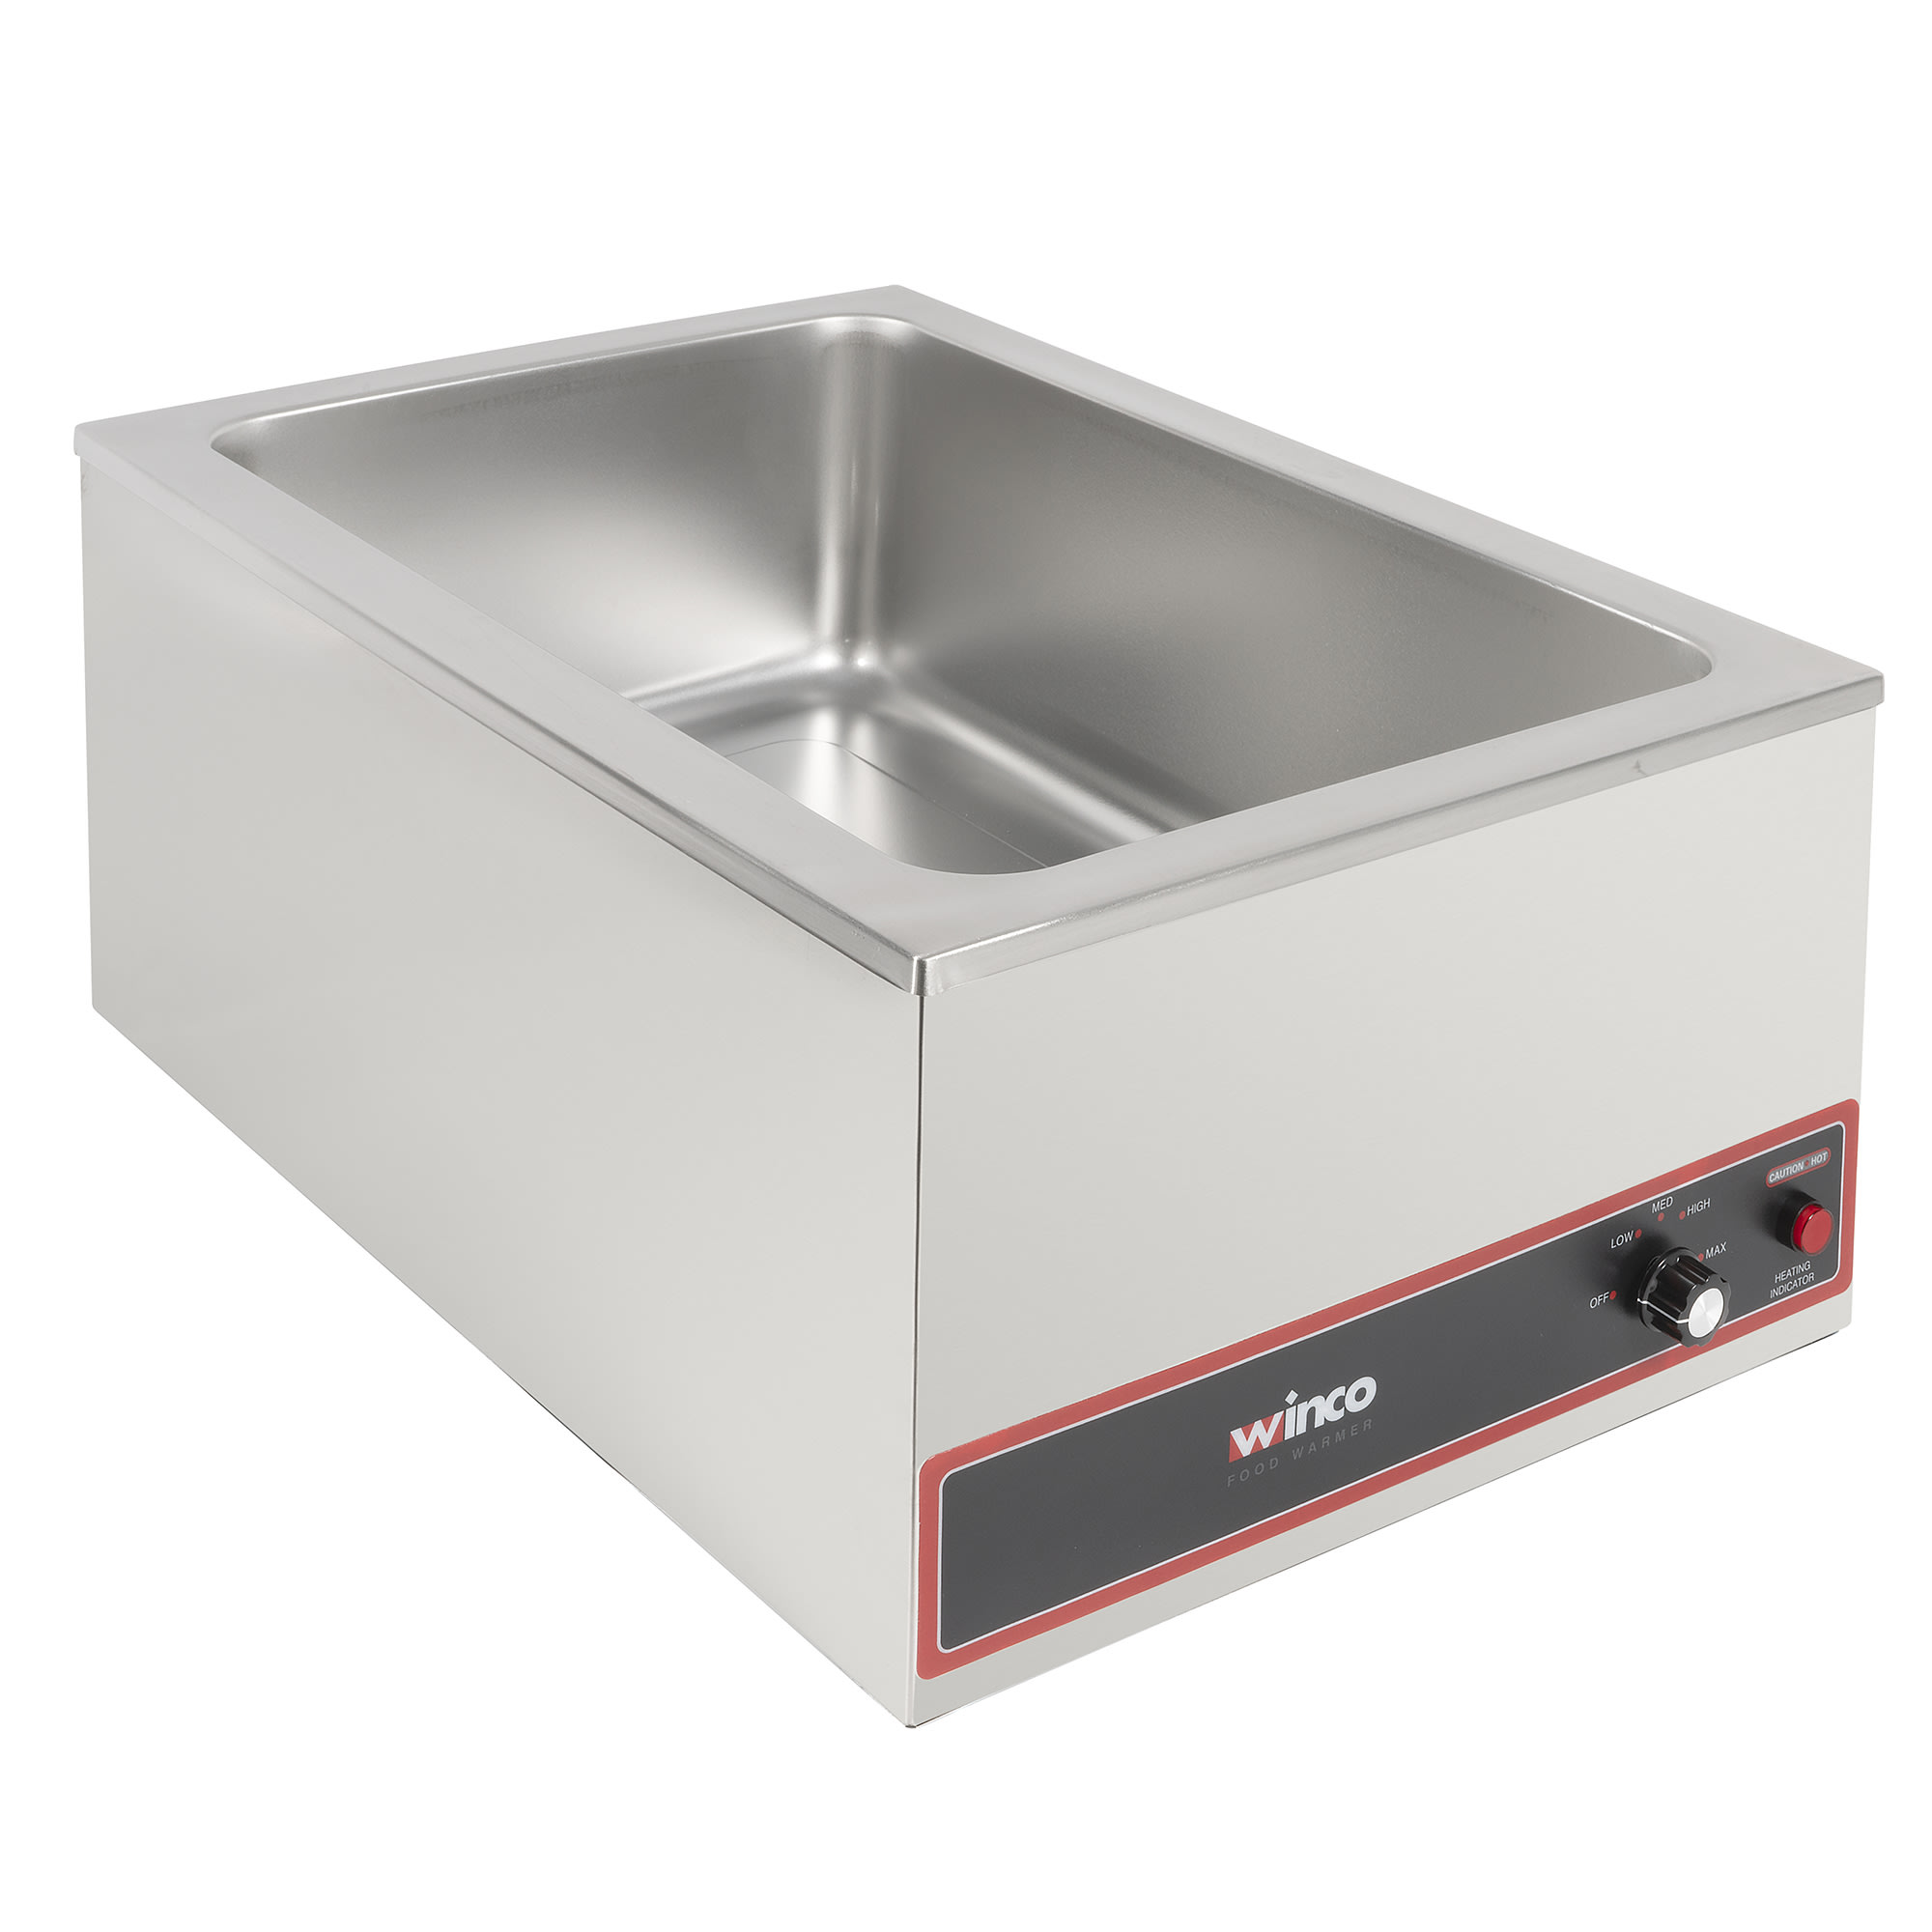 Winco FW-S500 Electric Food Warmer, 6 gal Capacity, 1200W, 120v